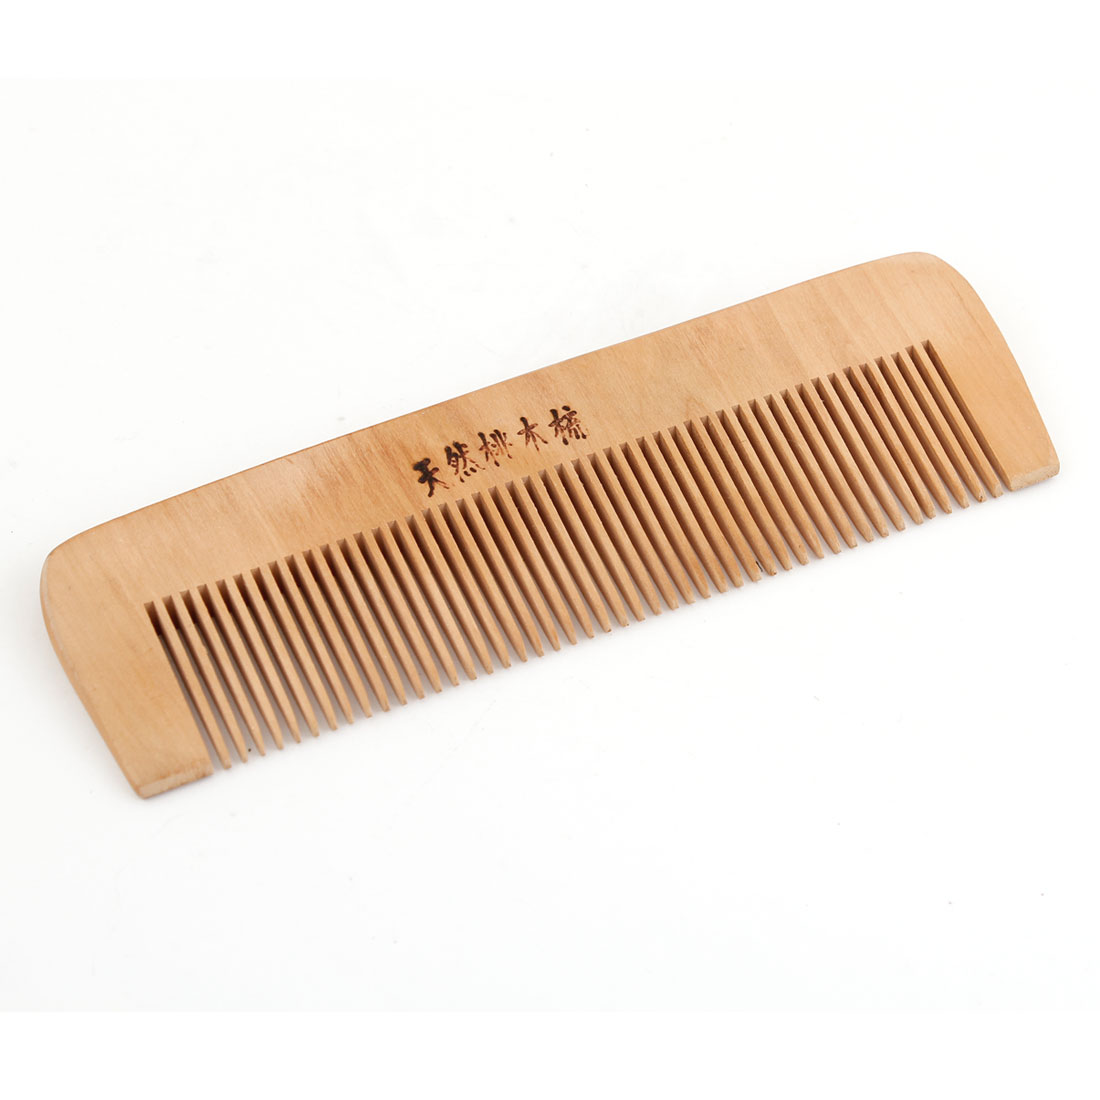 Handcrafted Wood 2mm Teeth Natural Wooden Toothed Head Dressing Hair Health Comb